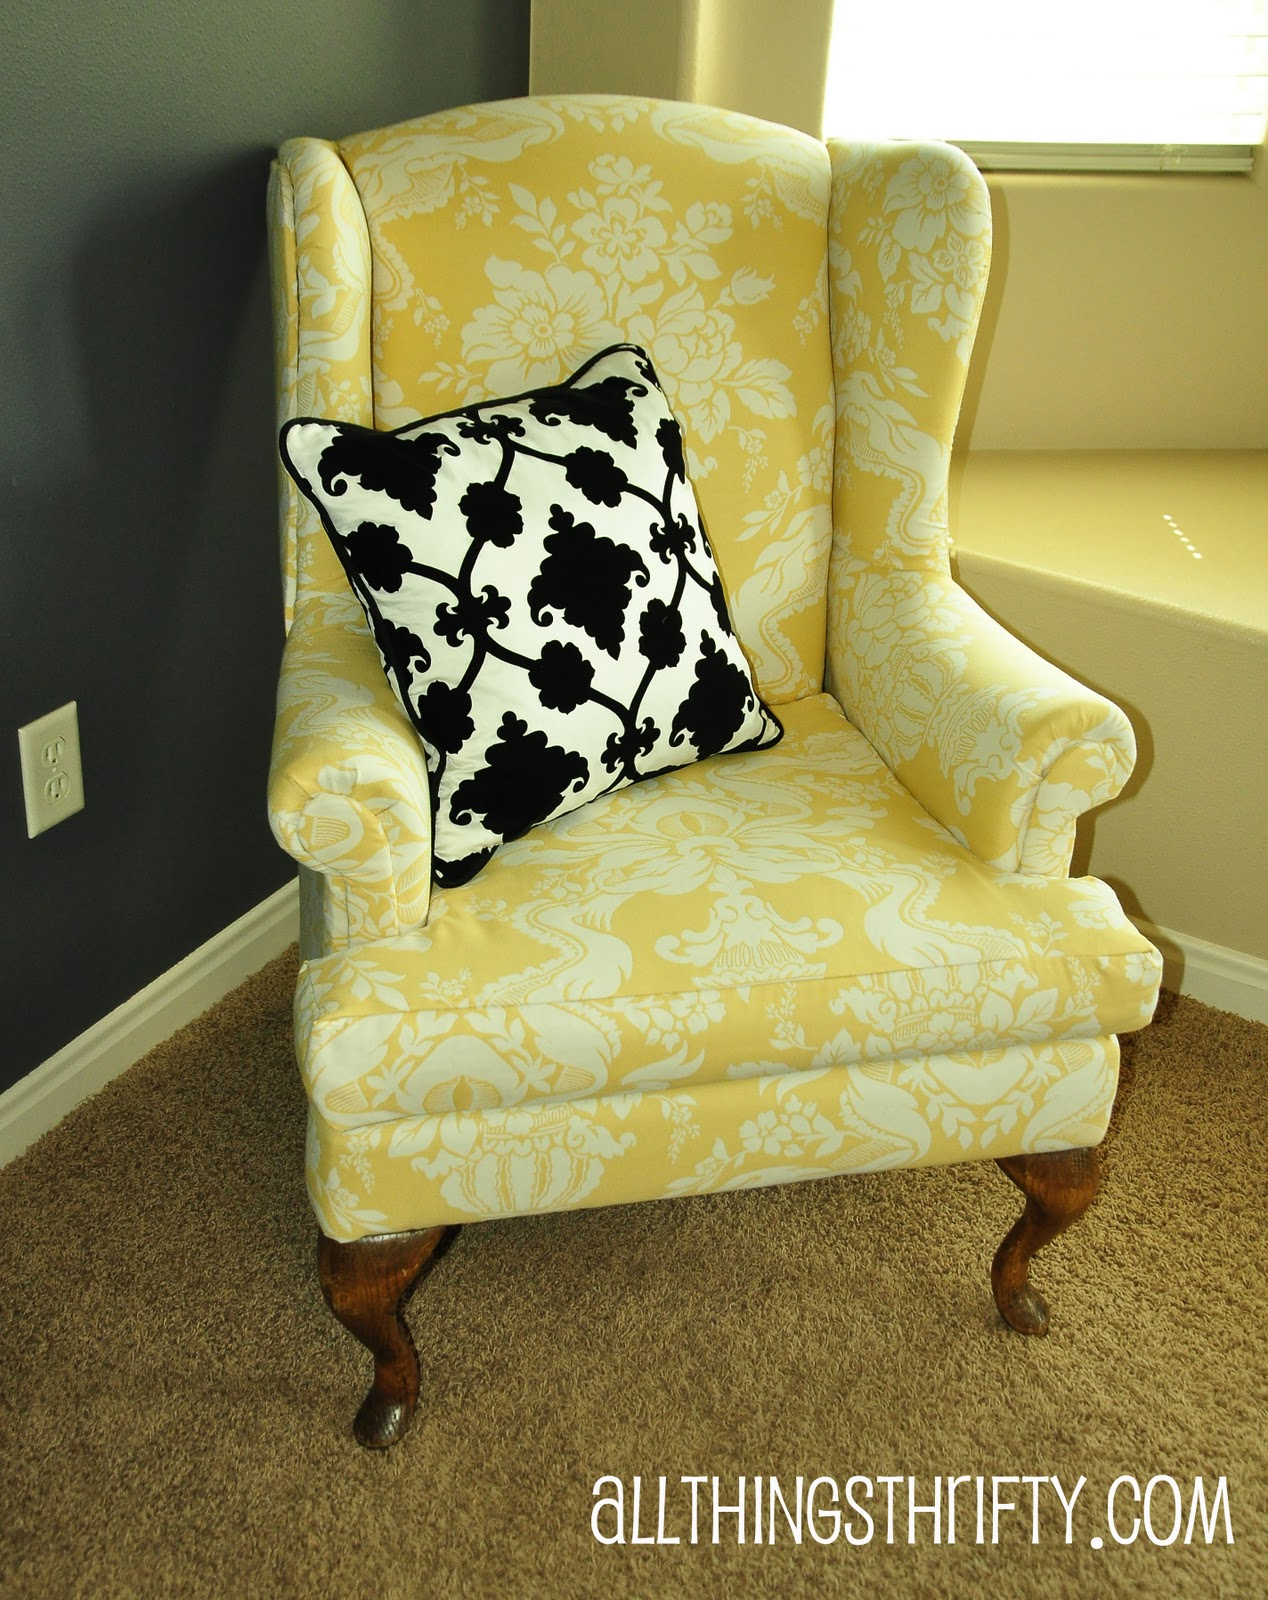 Marge Gormleyu0026#39;s Ceramics: The Wing Back Chair..... Inspiration and Admiration